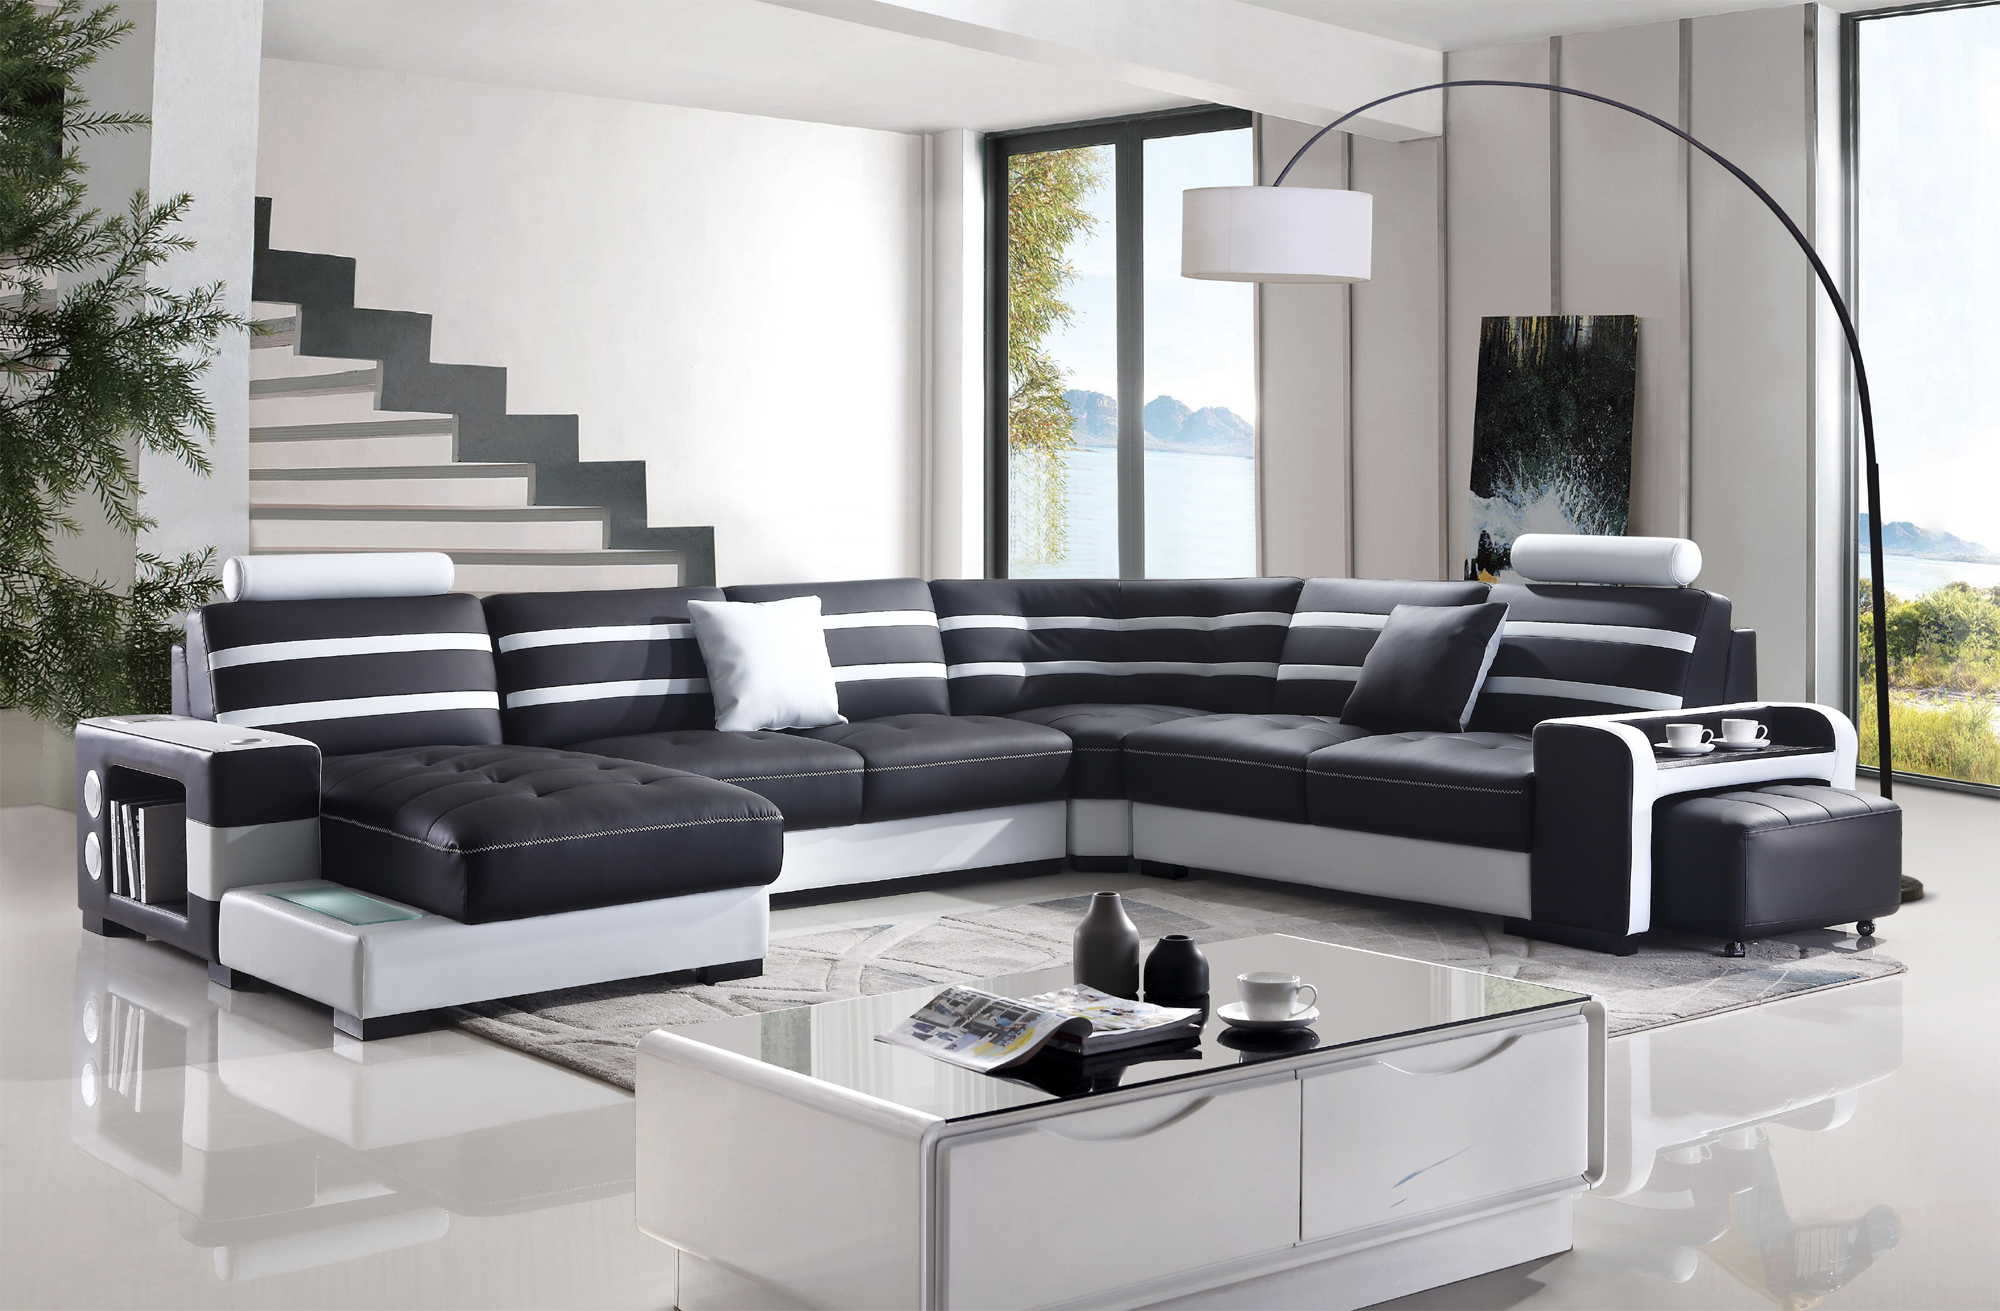 Elegant Multi Functional Corner Sofa – Joy Furniture Intended For Sofas And Chairs (View 5 of 15)